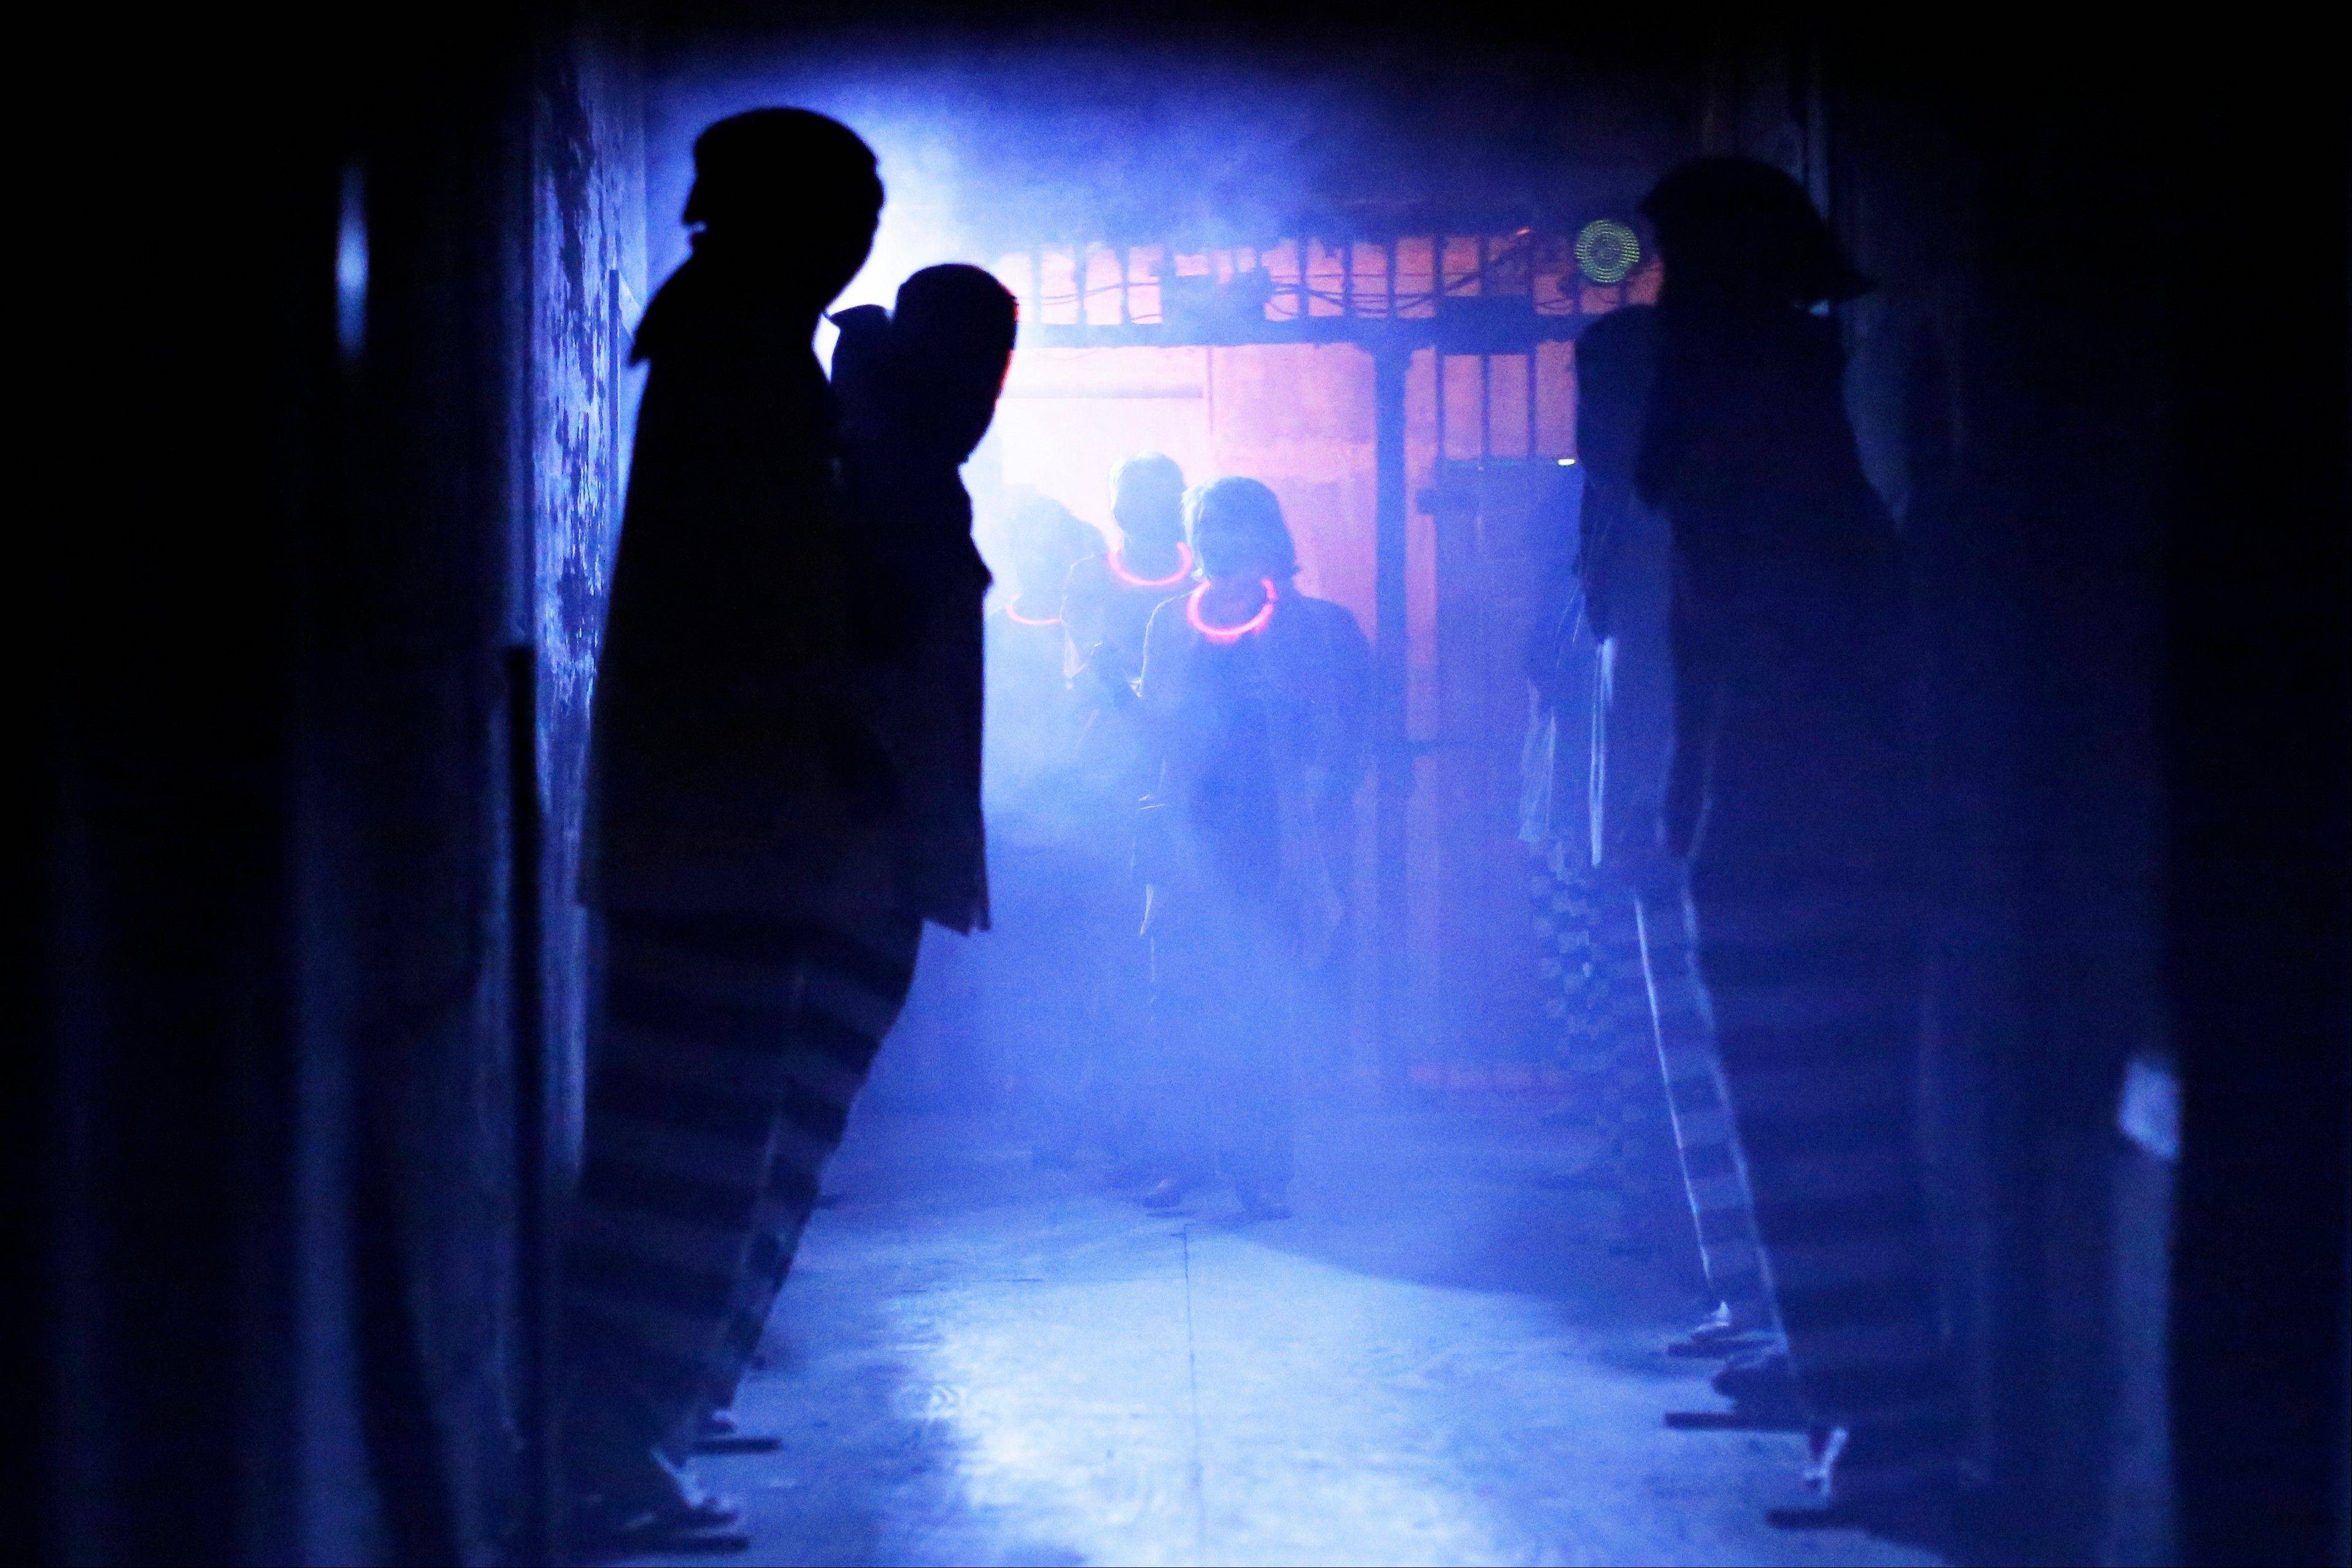 Visitors walk through a corridor during the Halloween haunted house, Terror Behind the Walls, at Eastern State Penitentiary in Philadelphia.